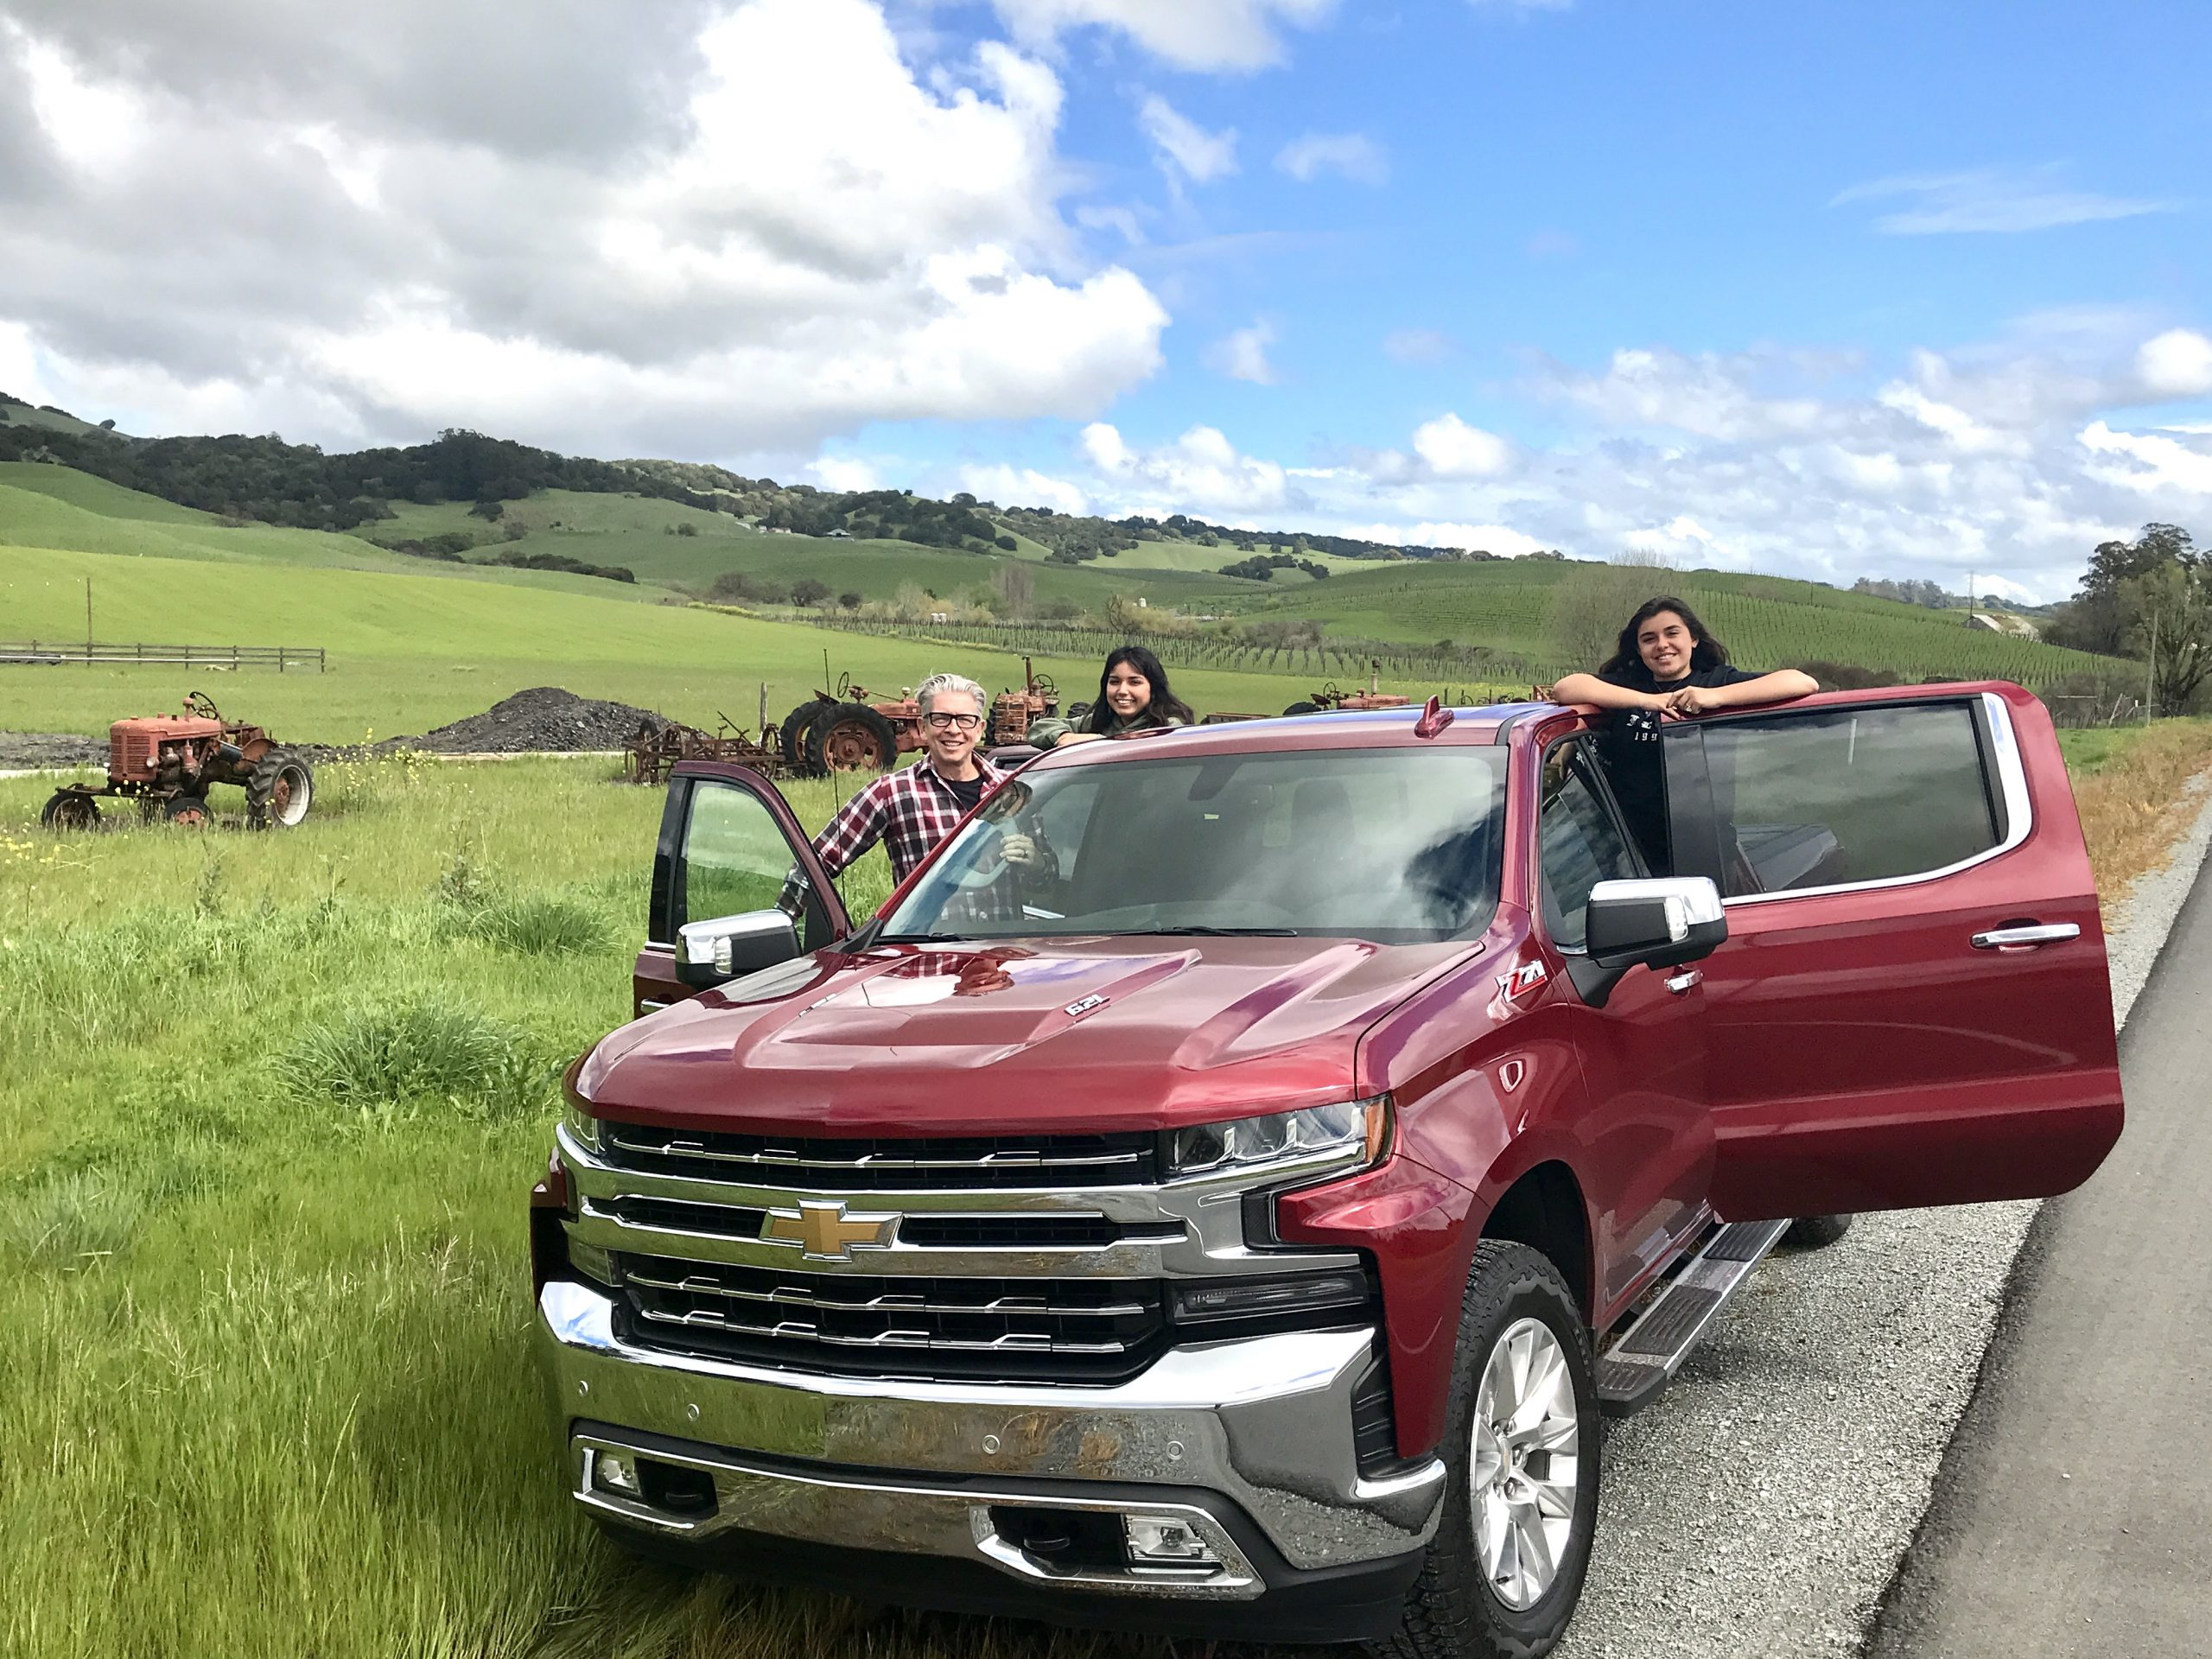 Stopping the pickup truck on the side of the road in Sonoma, CA to take a photo of the beautiful terrain.